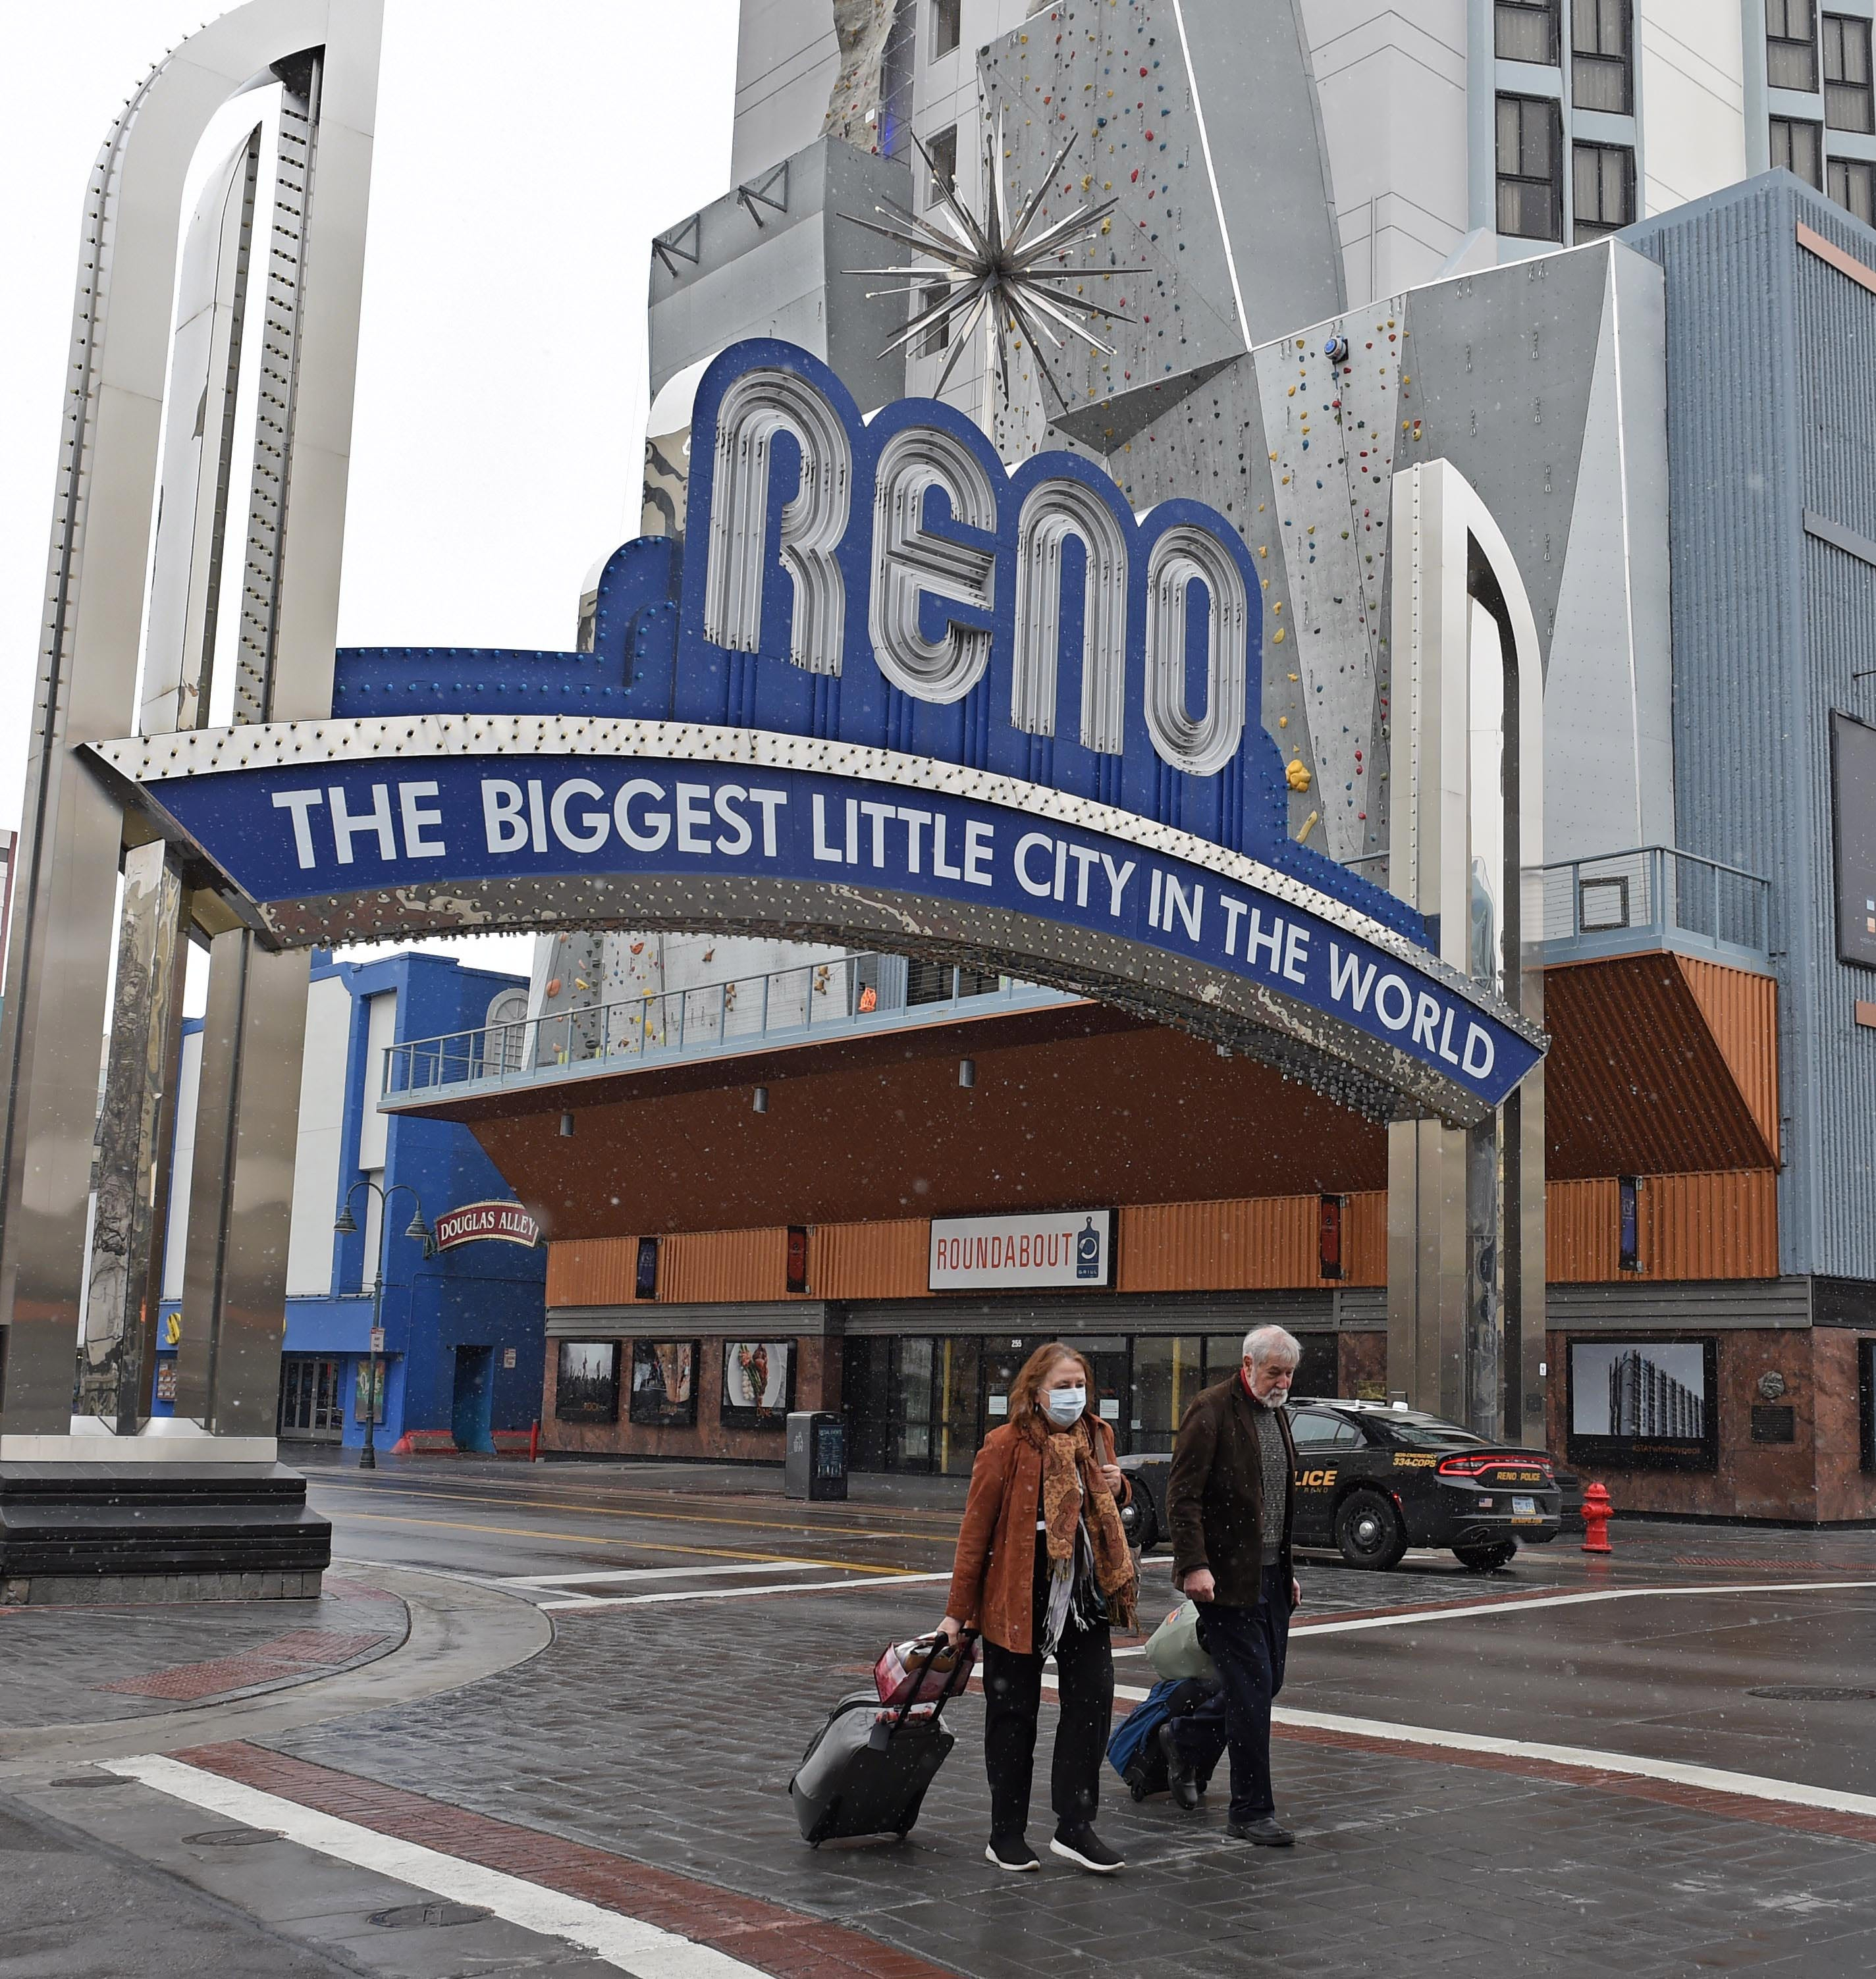 Ted and Chris Champman cross the street in downtown Reno on March 18, 2020. The couple, who is from Florida, was planning on staying in Reno two days, but they had to leave after their first night.